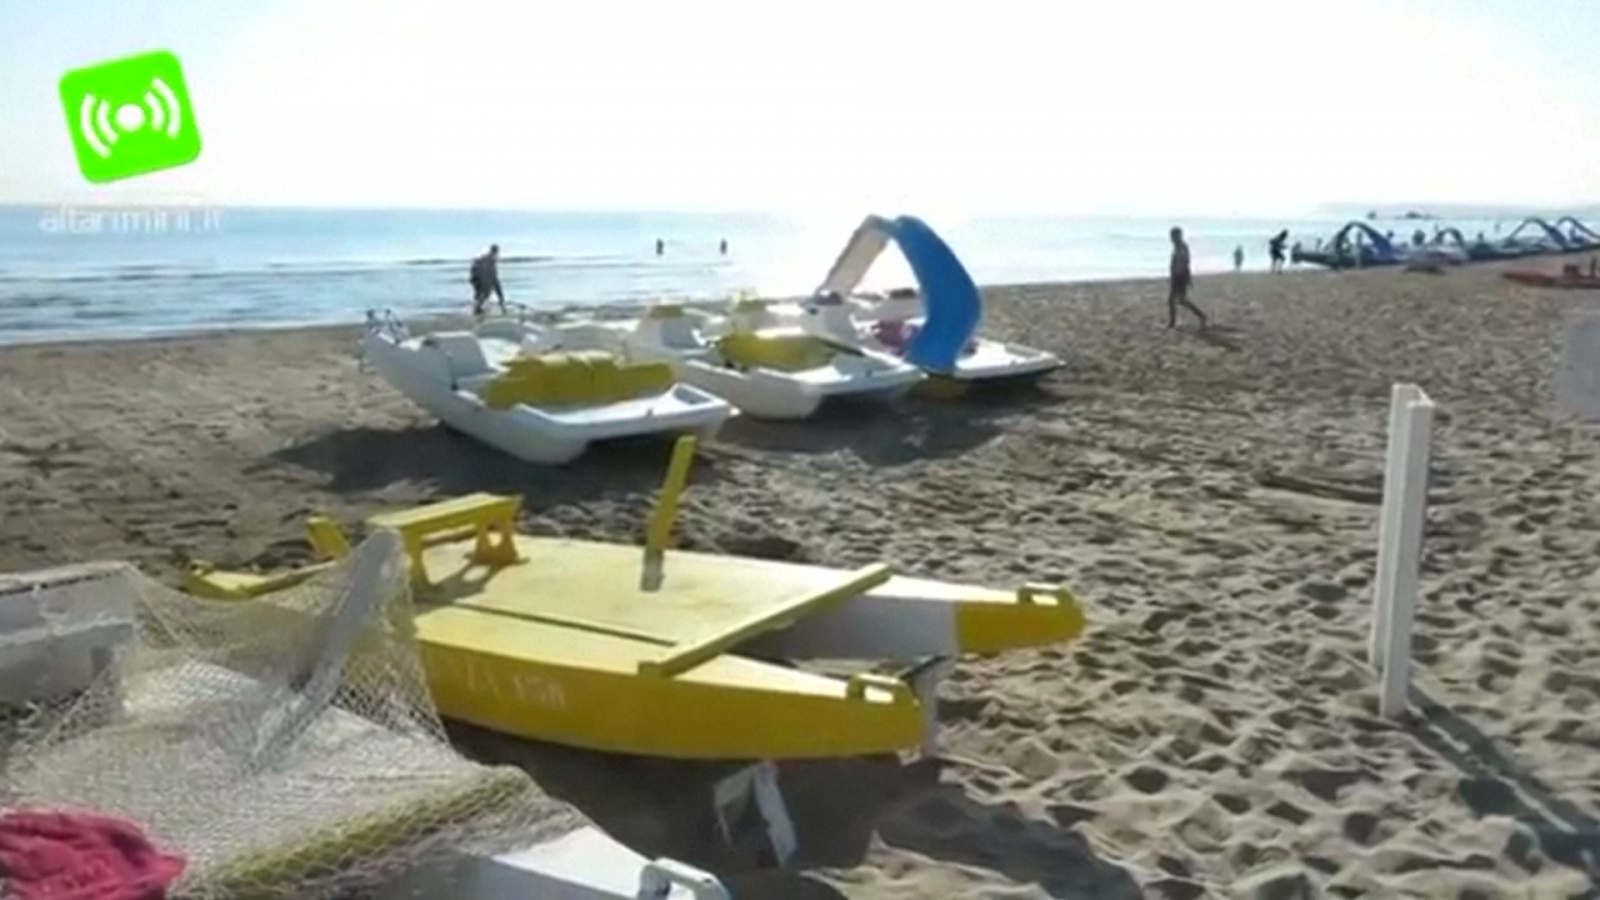 polish-woman-gang-raped-on-beach-in-italy